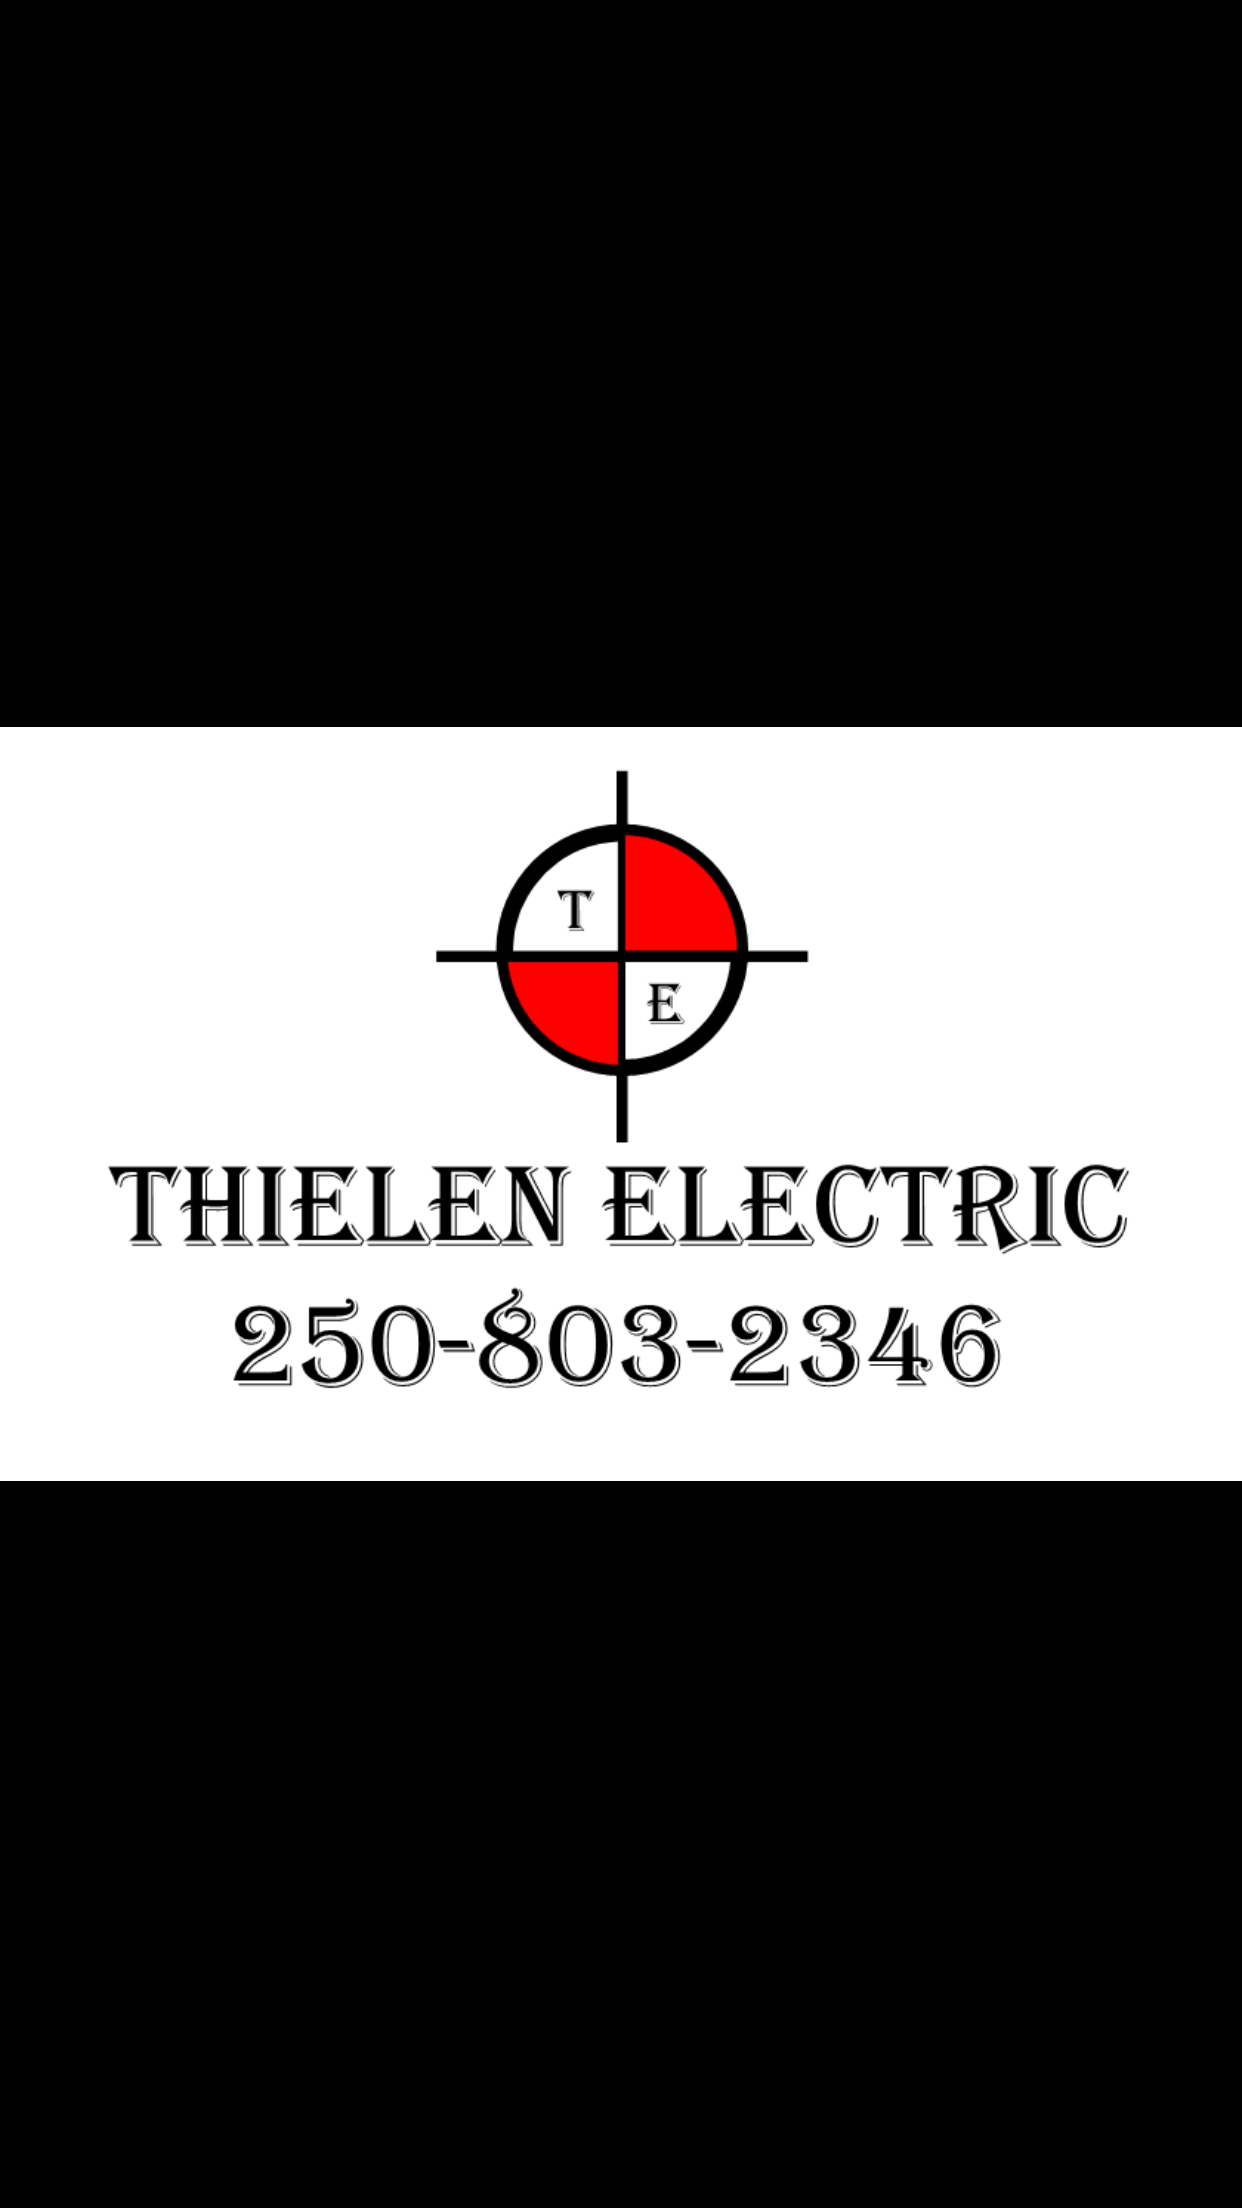 Thielen Electric